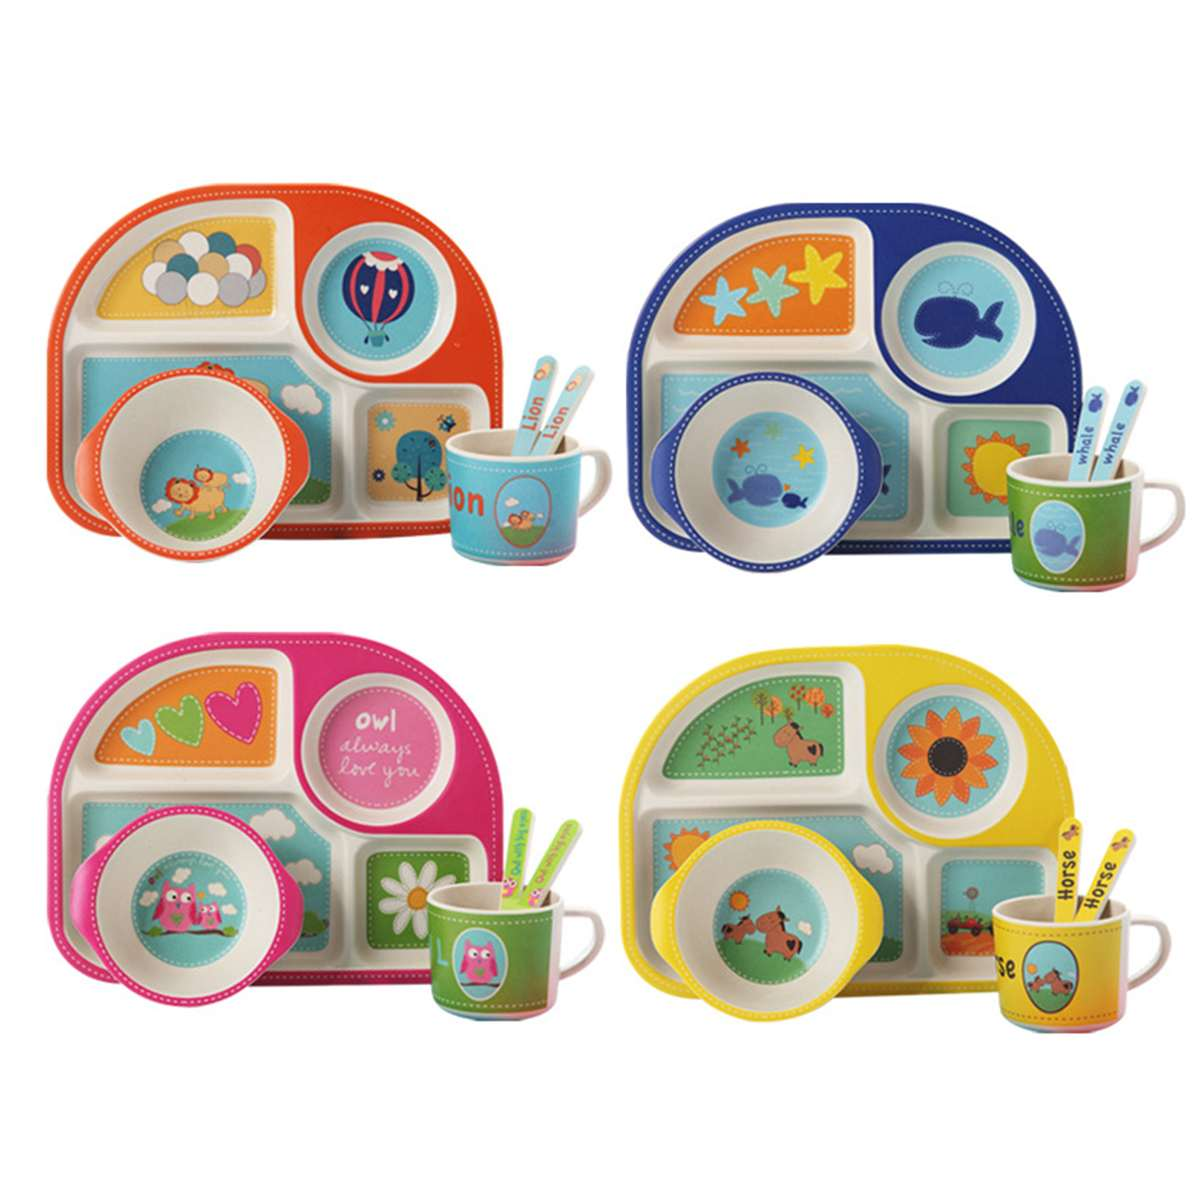 1 x Divided dinner tray for kids melamine cute baby BOWL PLATE